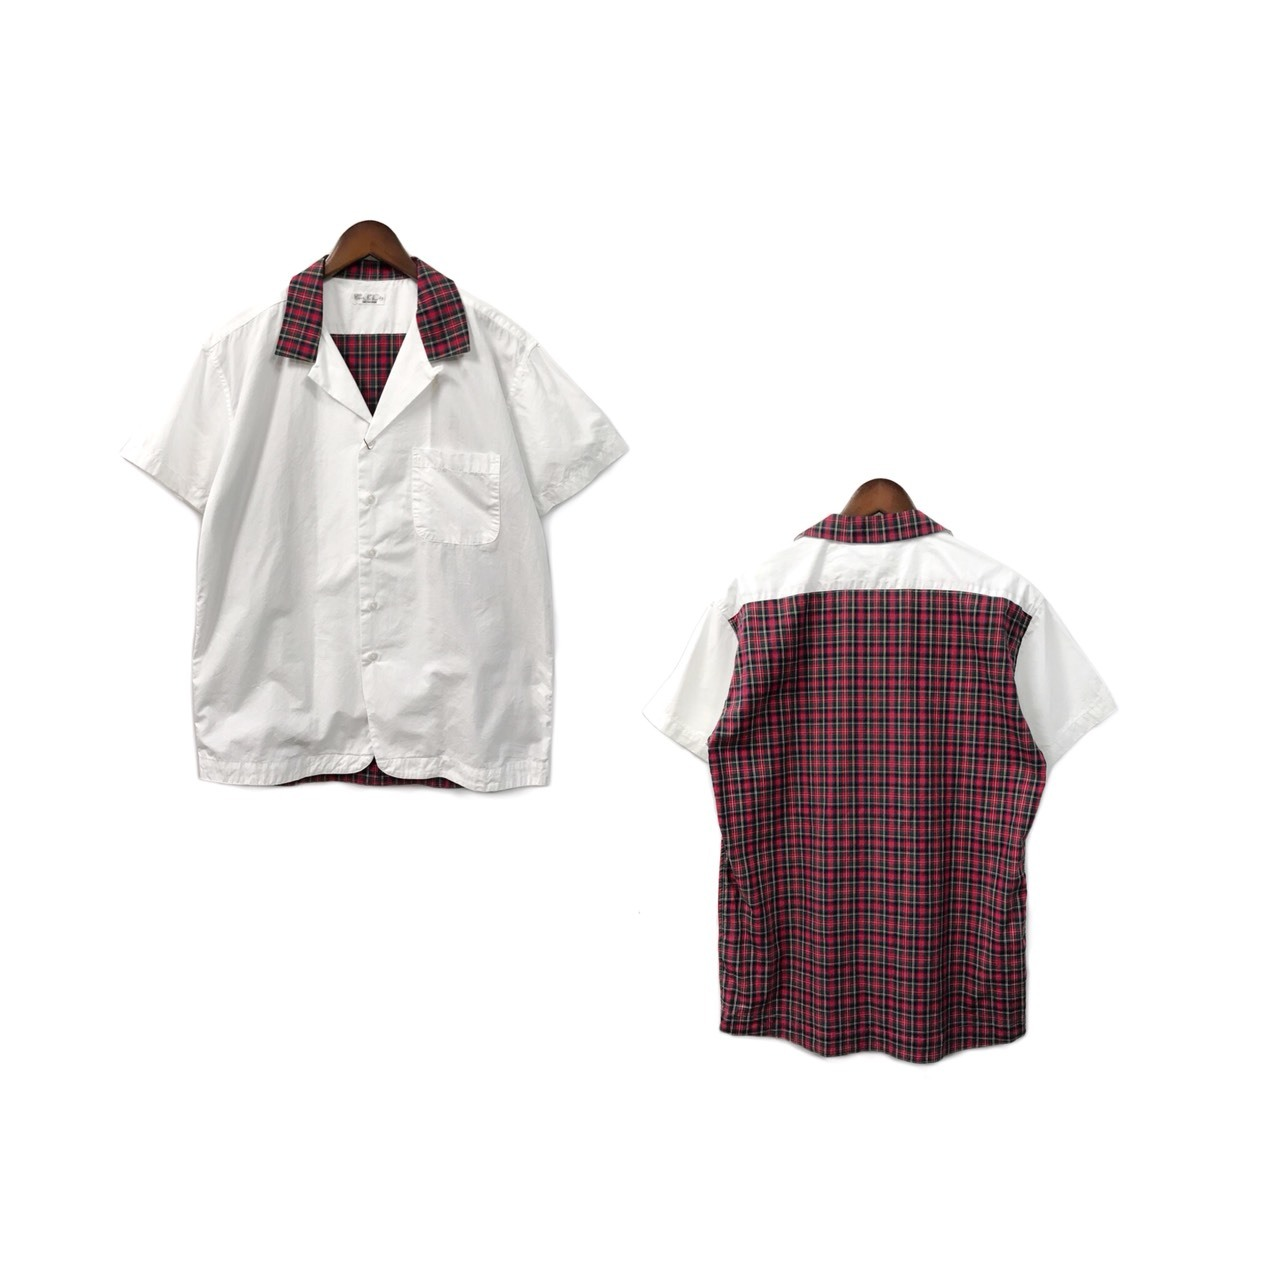 Soe Shirt - Switching Open Collar Shirt (size - 0) ¥12000+tax → ¥8400+tax